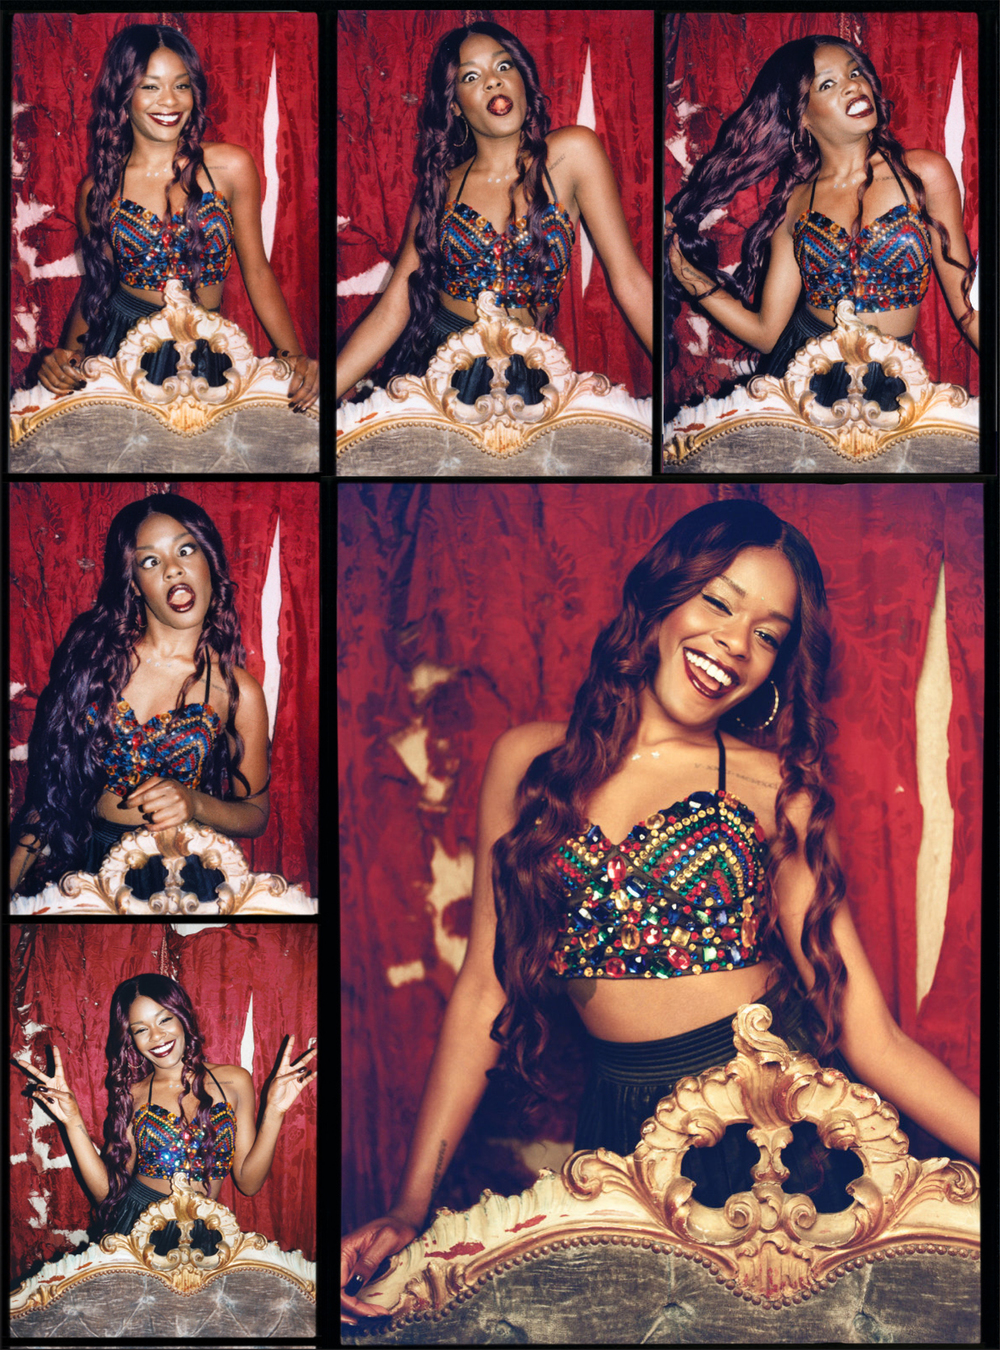 ASOS___Azealia_Tyrone_Lebon_January_2012-2.jpg